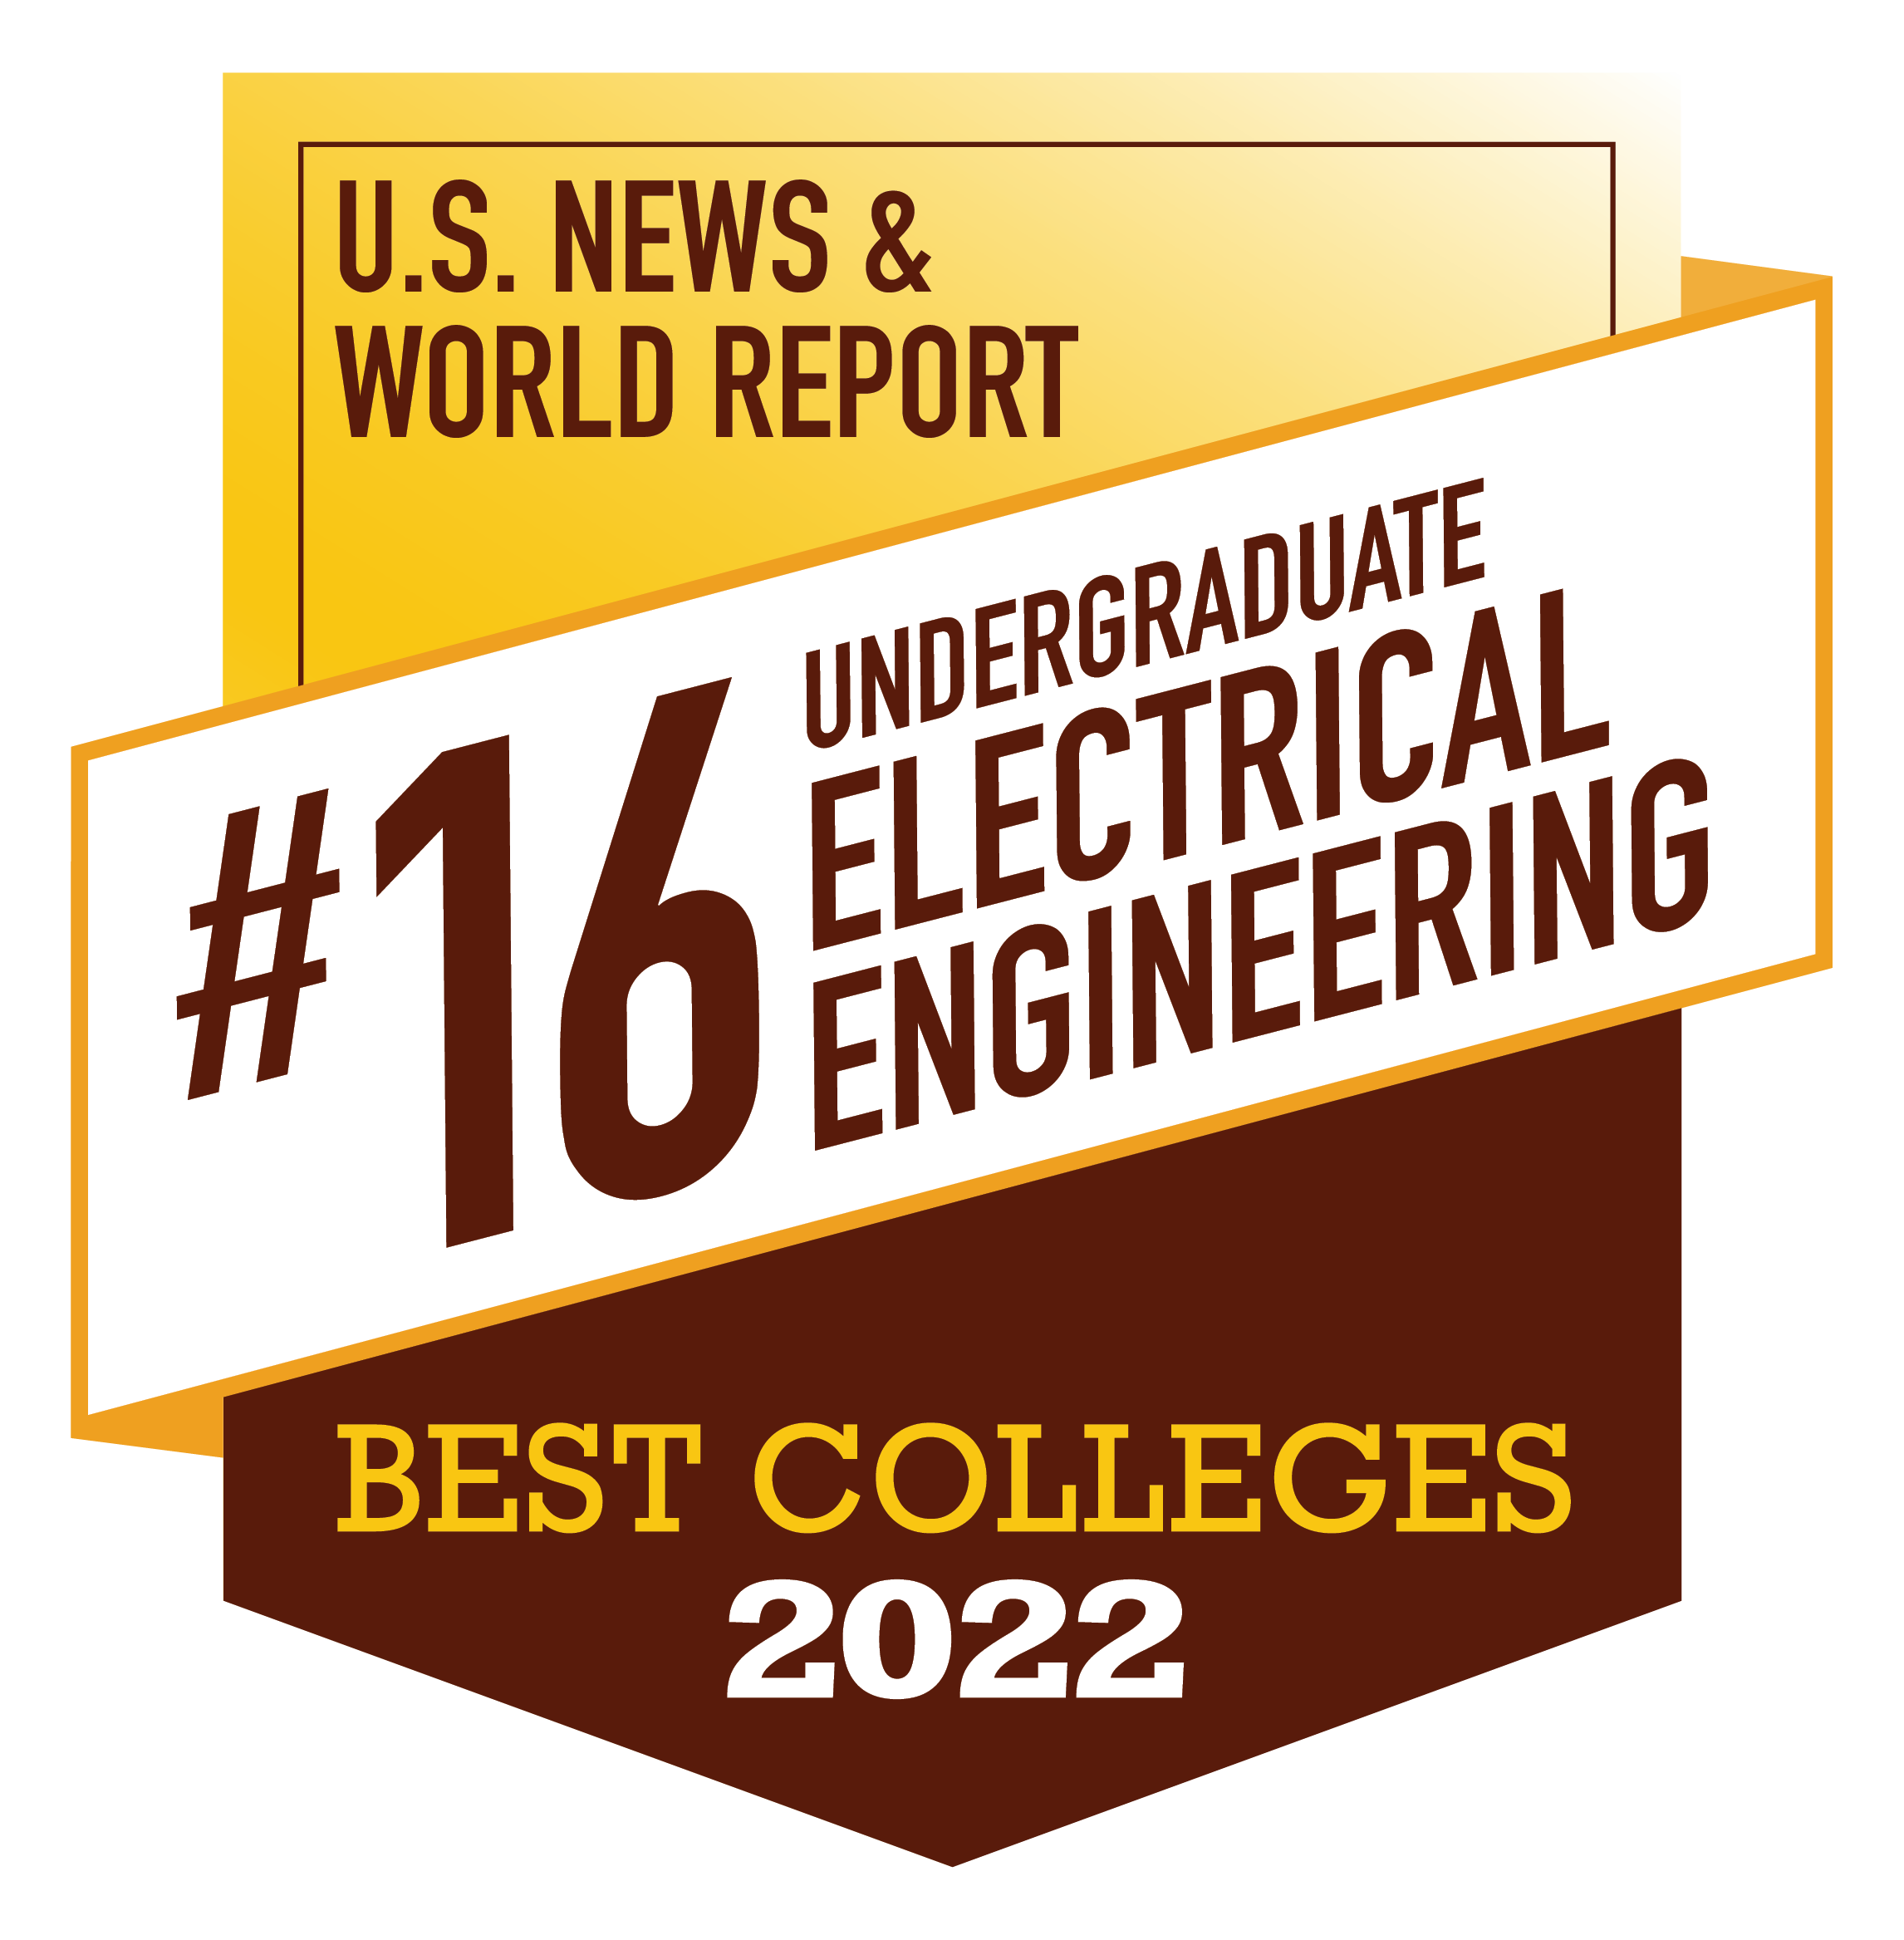 Electrical engineering named 16th best by US News & World Report